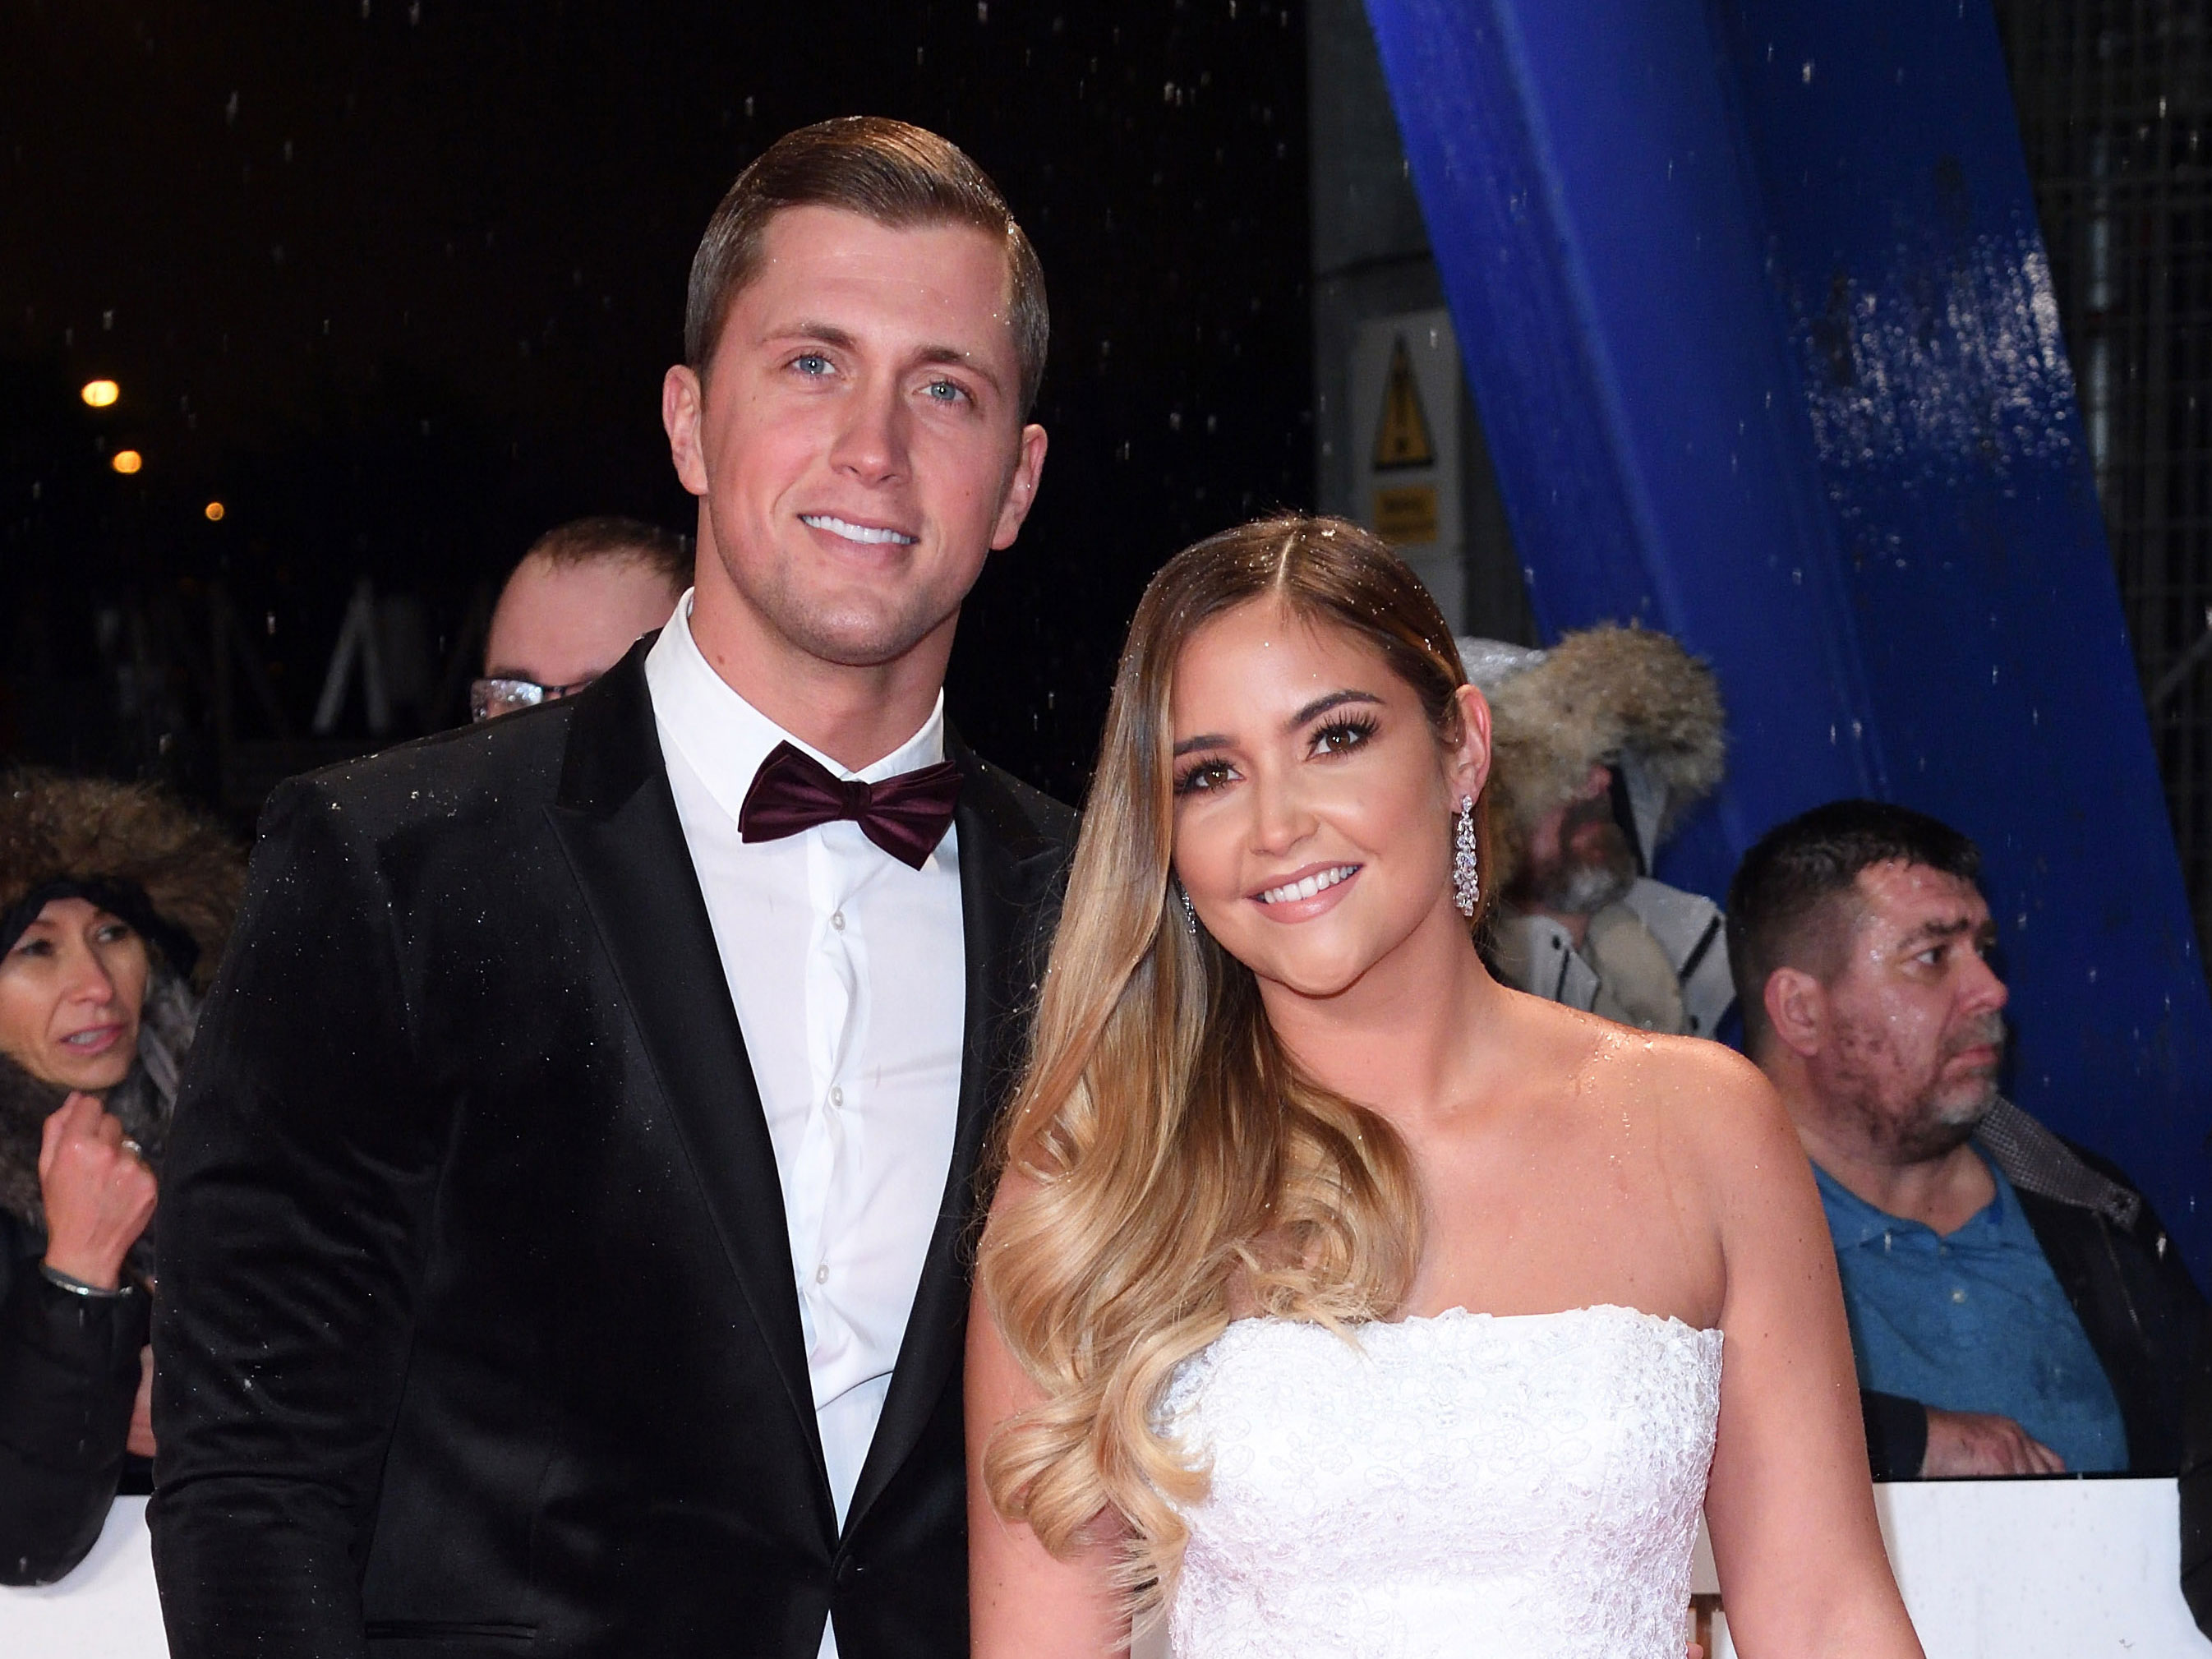 Jacqueline Jossa cosies up to husband Dan Osborne for romantic snap as they prove they've put marriage woes behind them